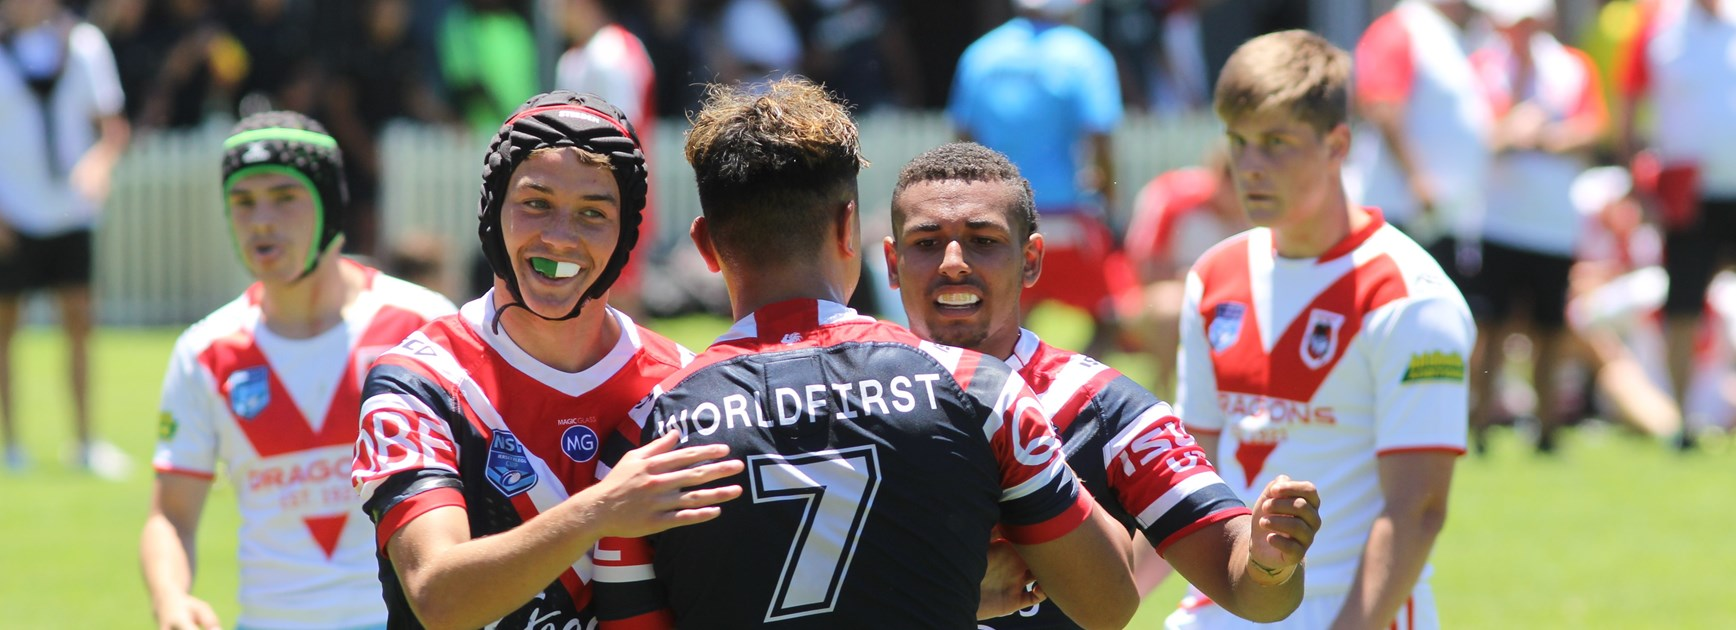 Club's juniors excited to wear the Sydney Roosters colours